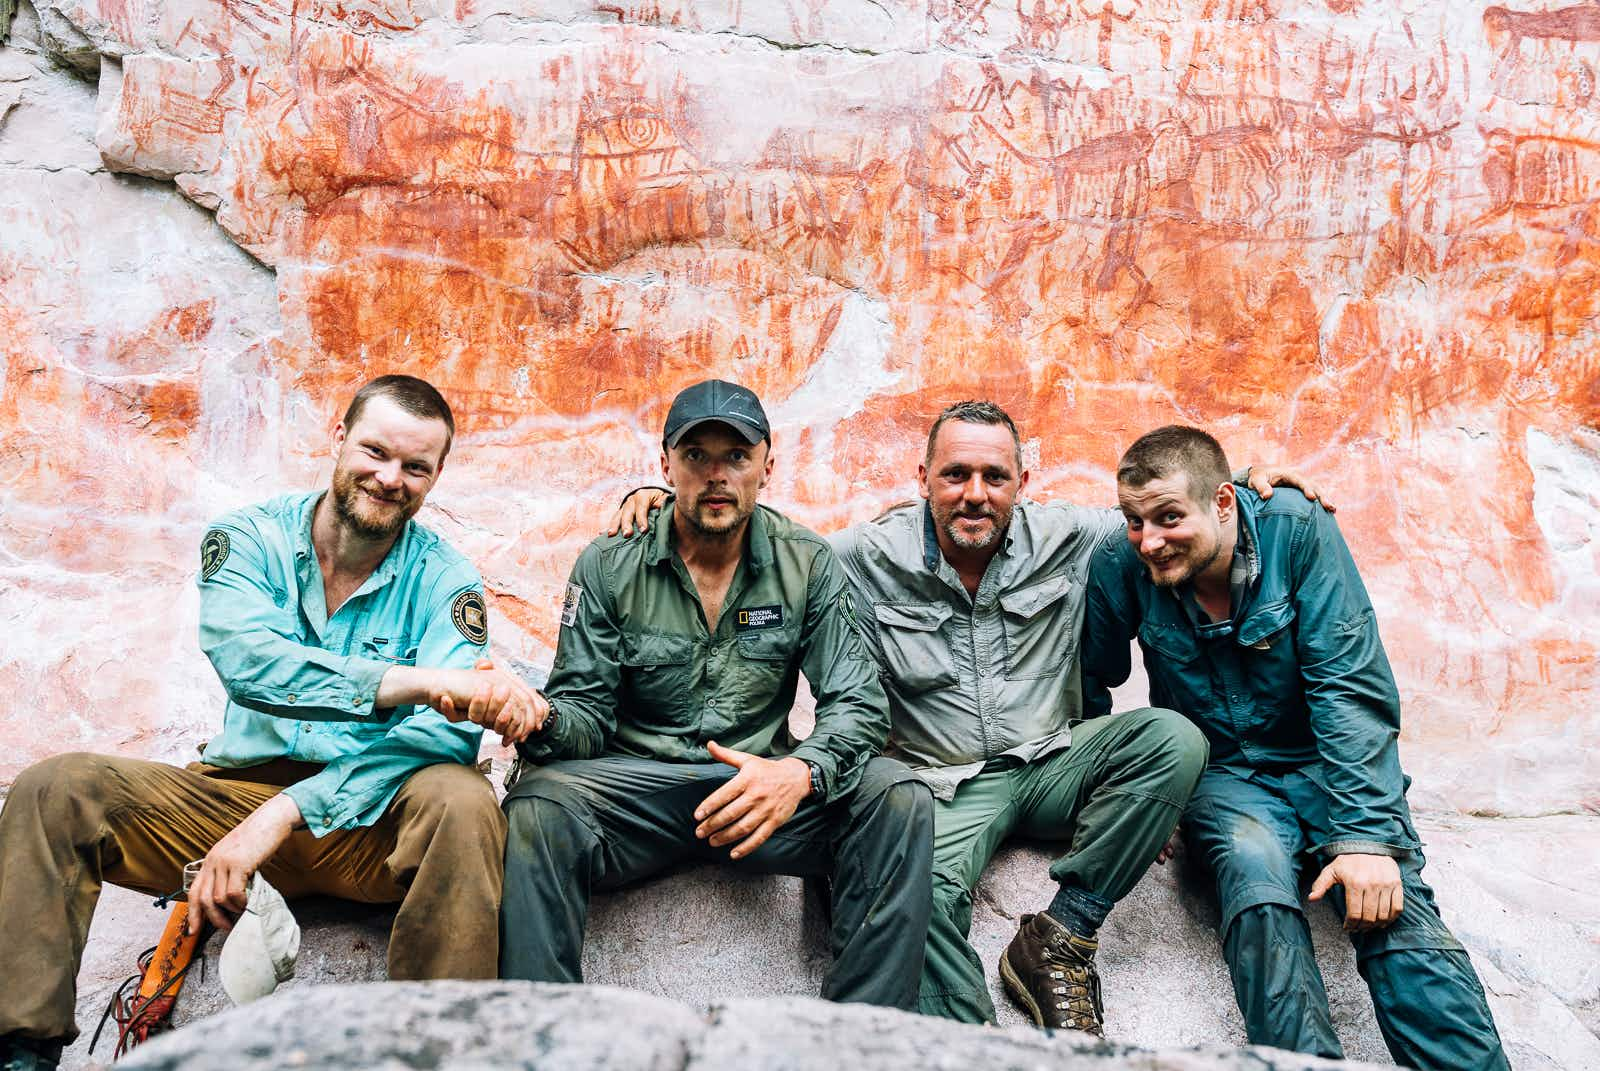 Irish explorer undertakes 22-day trip to see Colombia's 'Sistine Chapel of the Amazon'